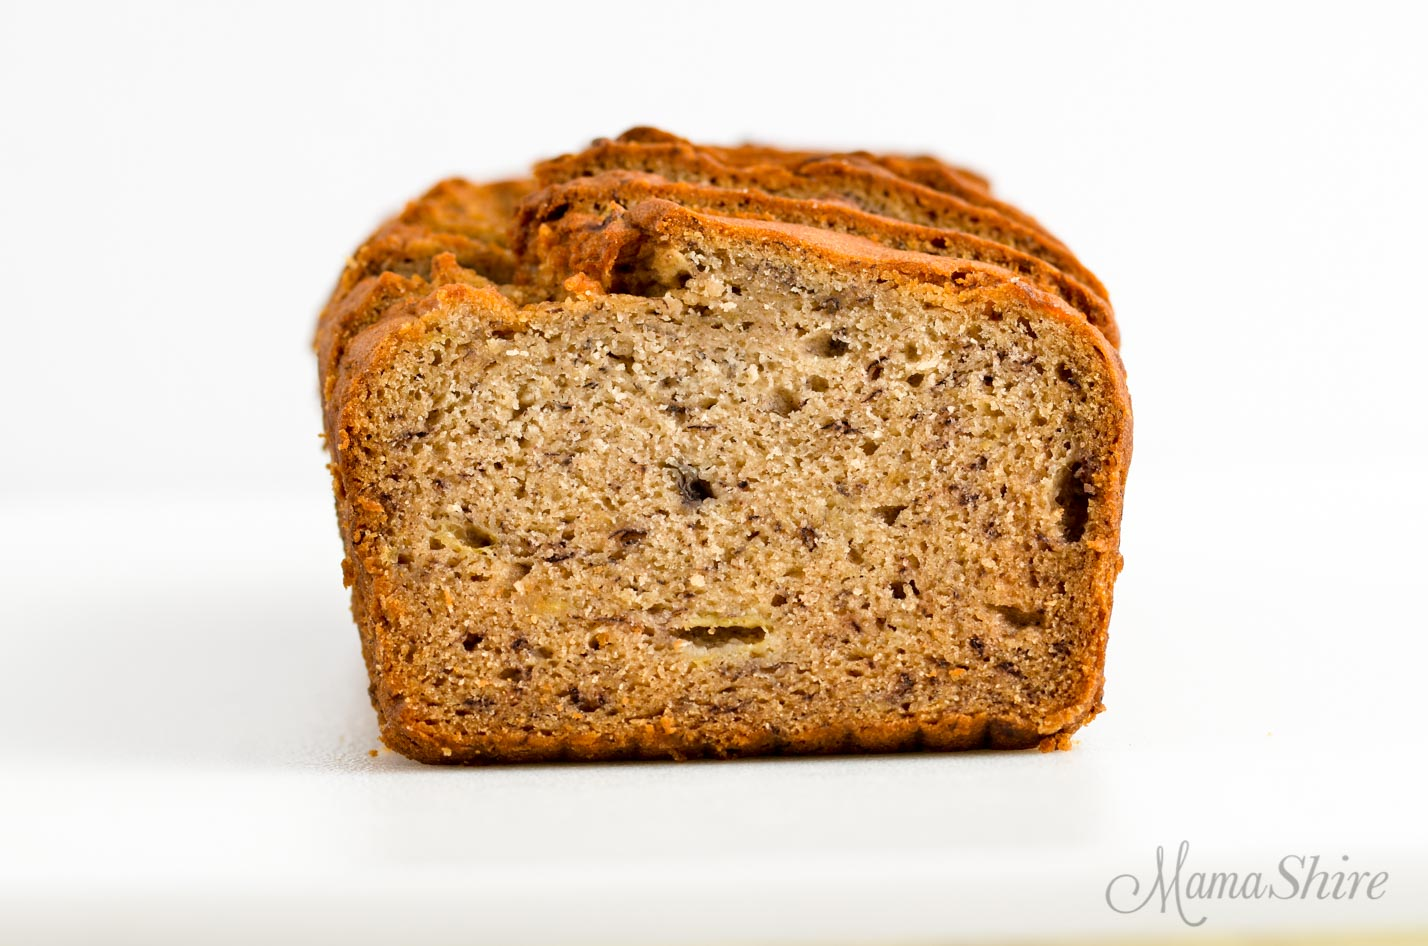 A slice of gluten-free banana bread.